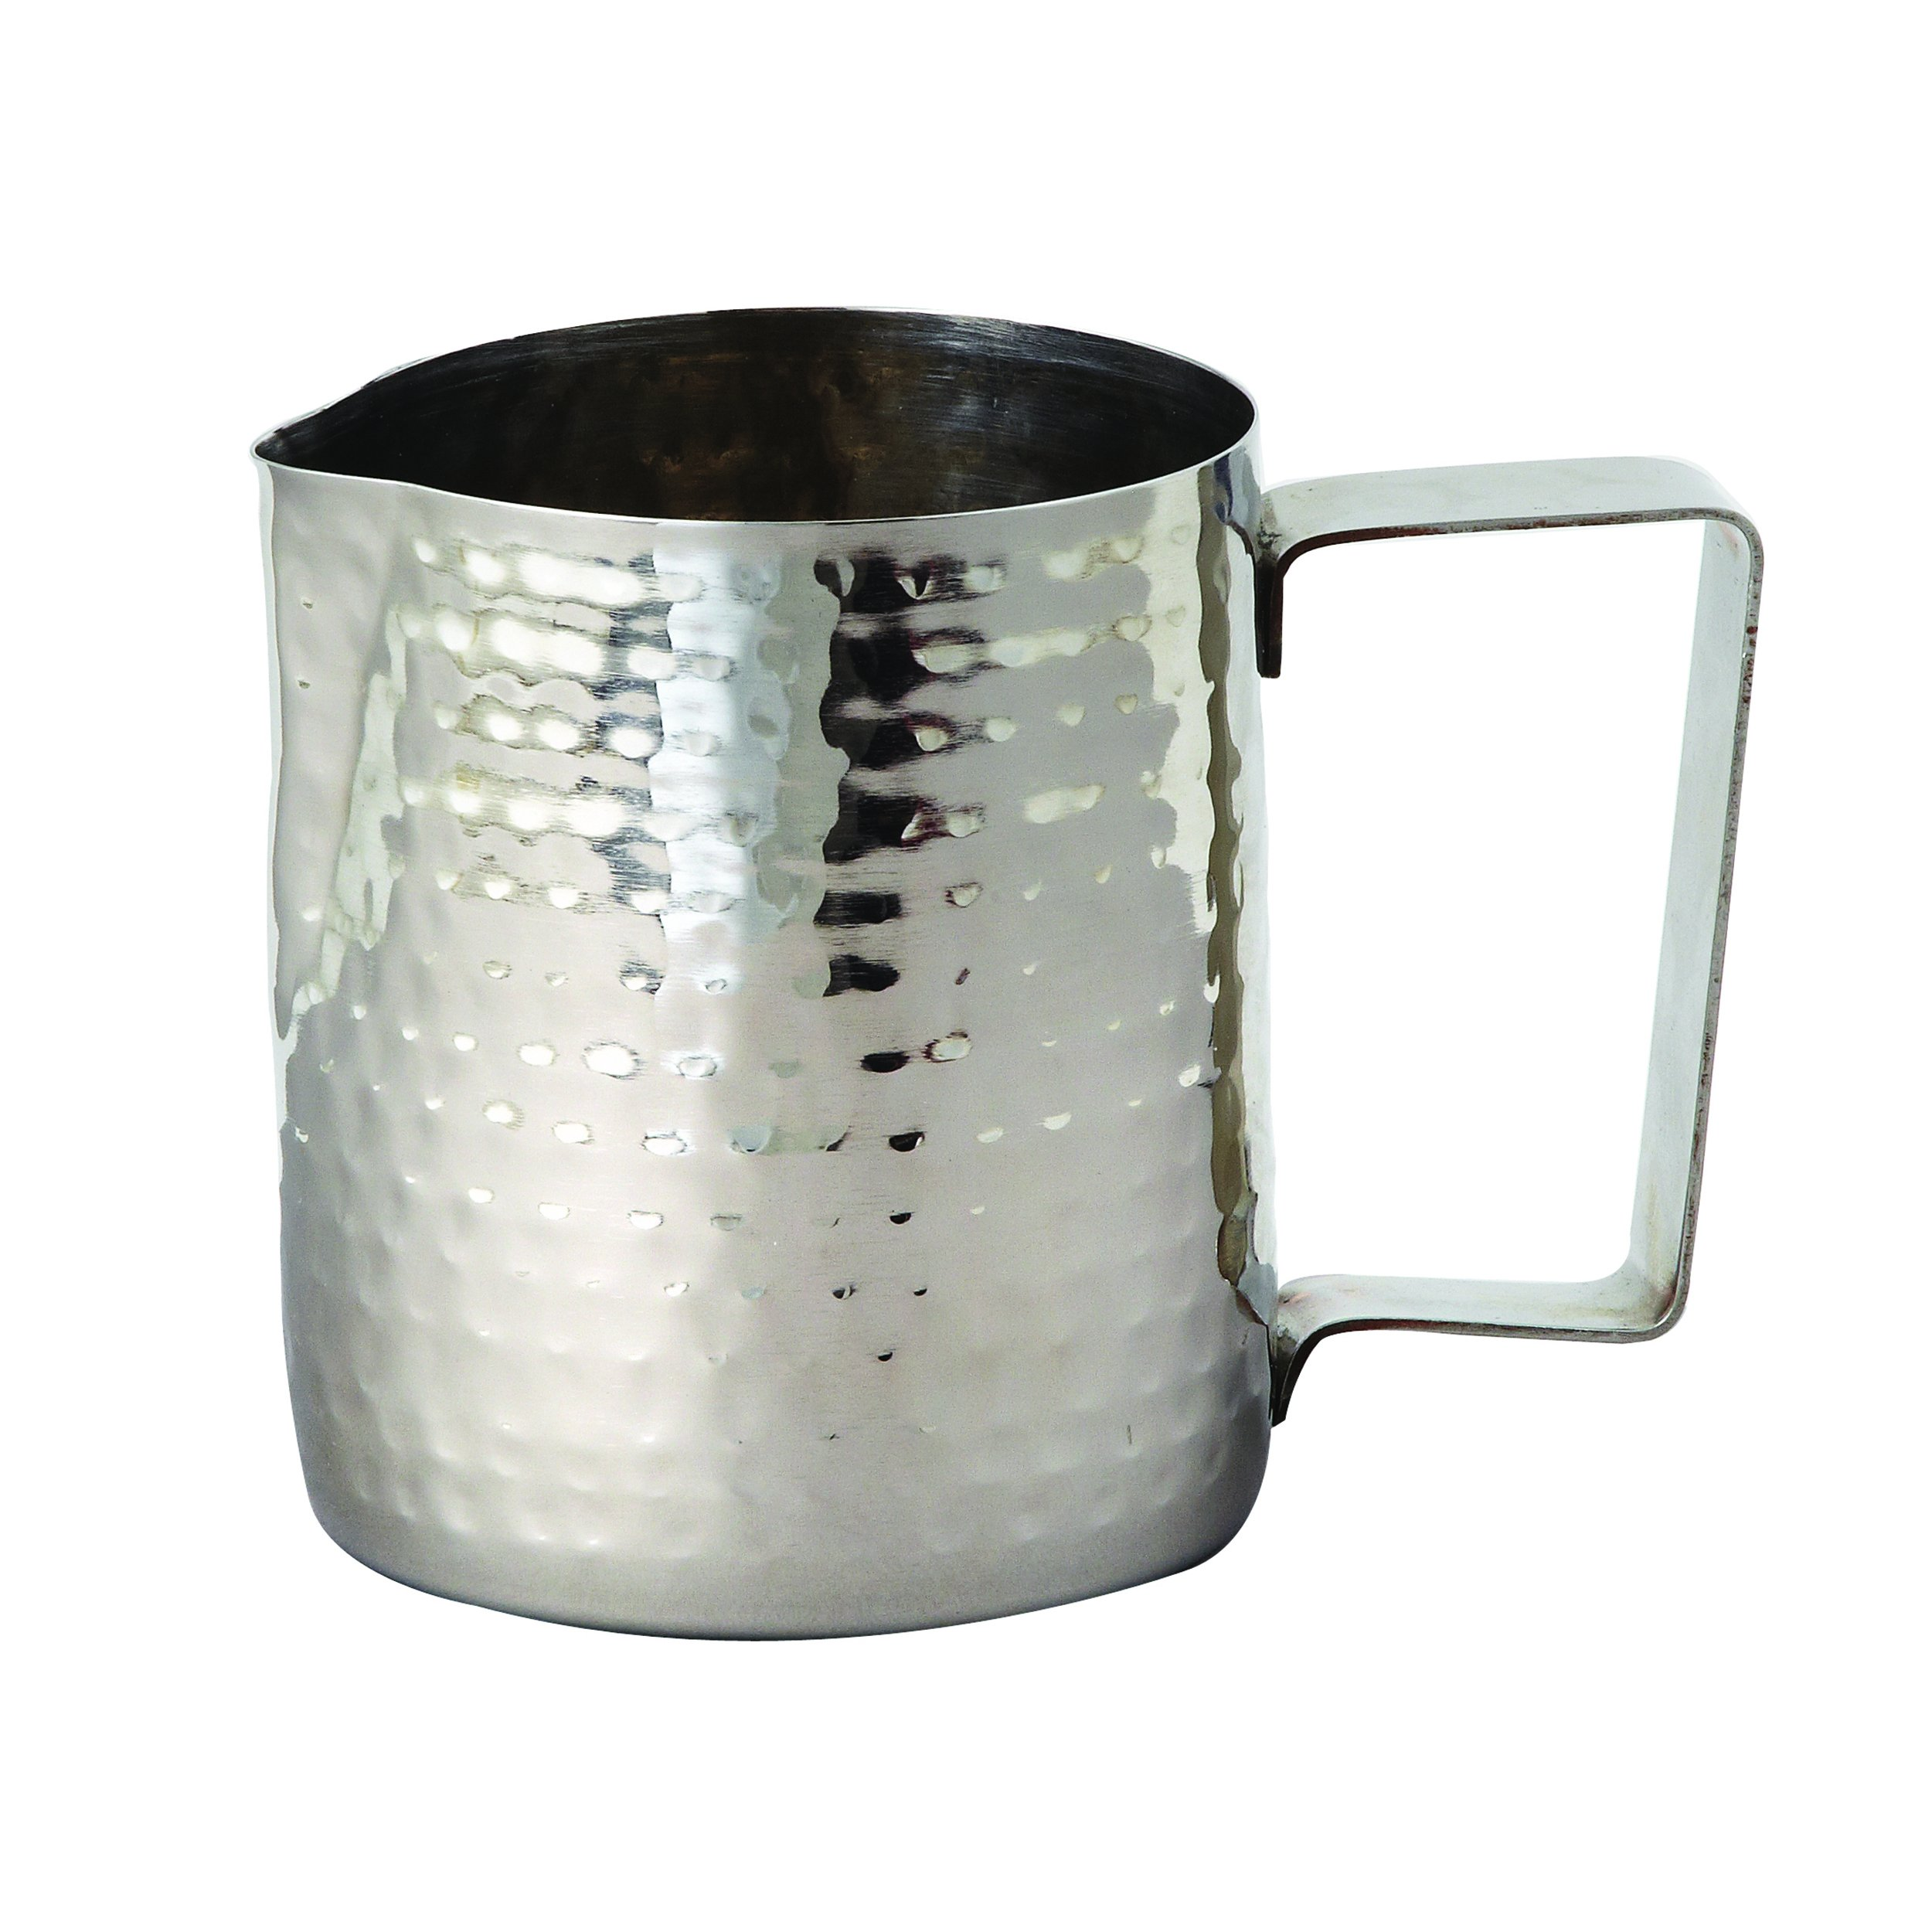 Elegance Hammered Stainless Steel Milk Frothing Pitcher